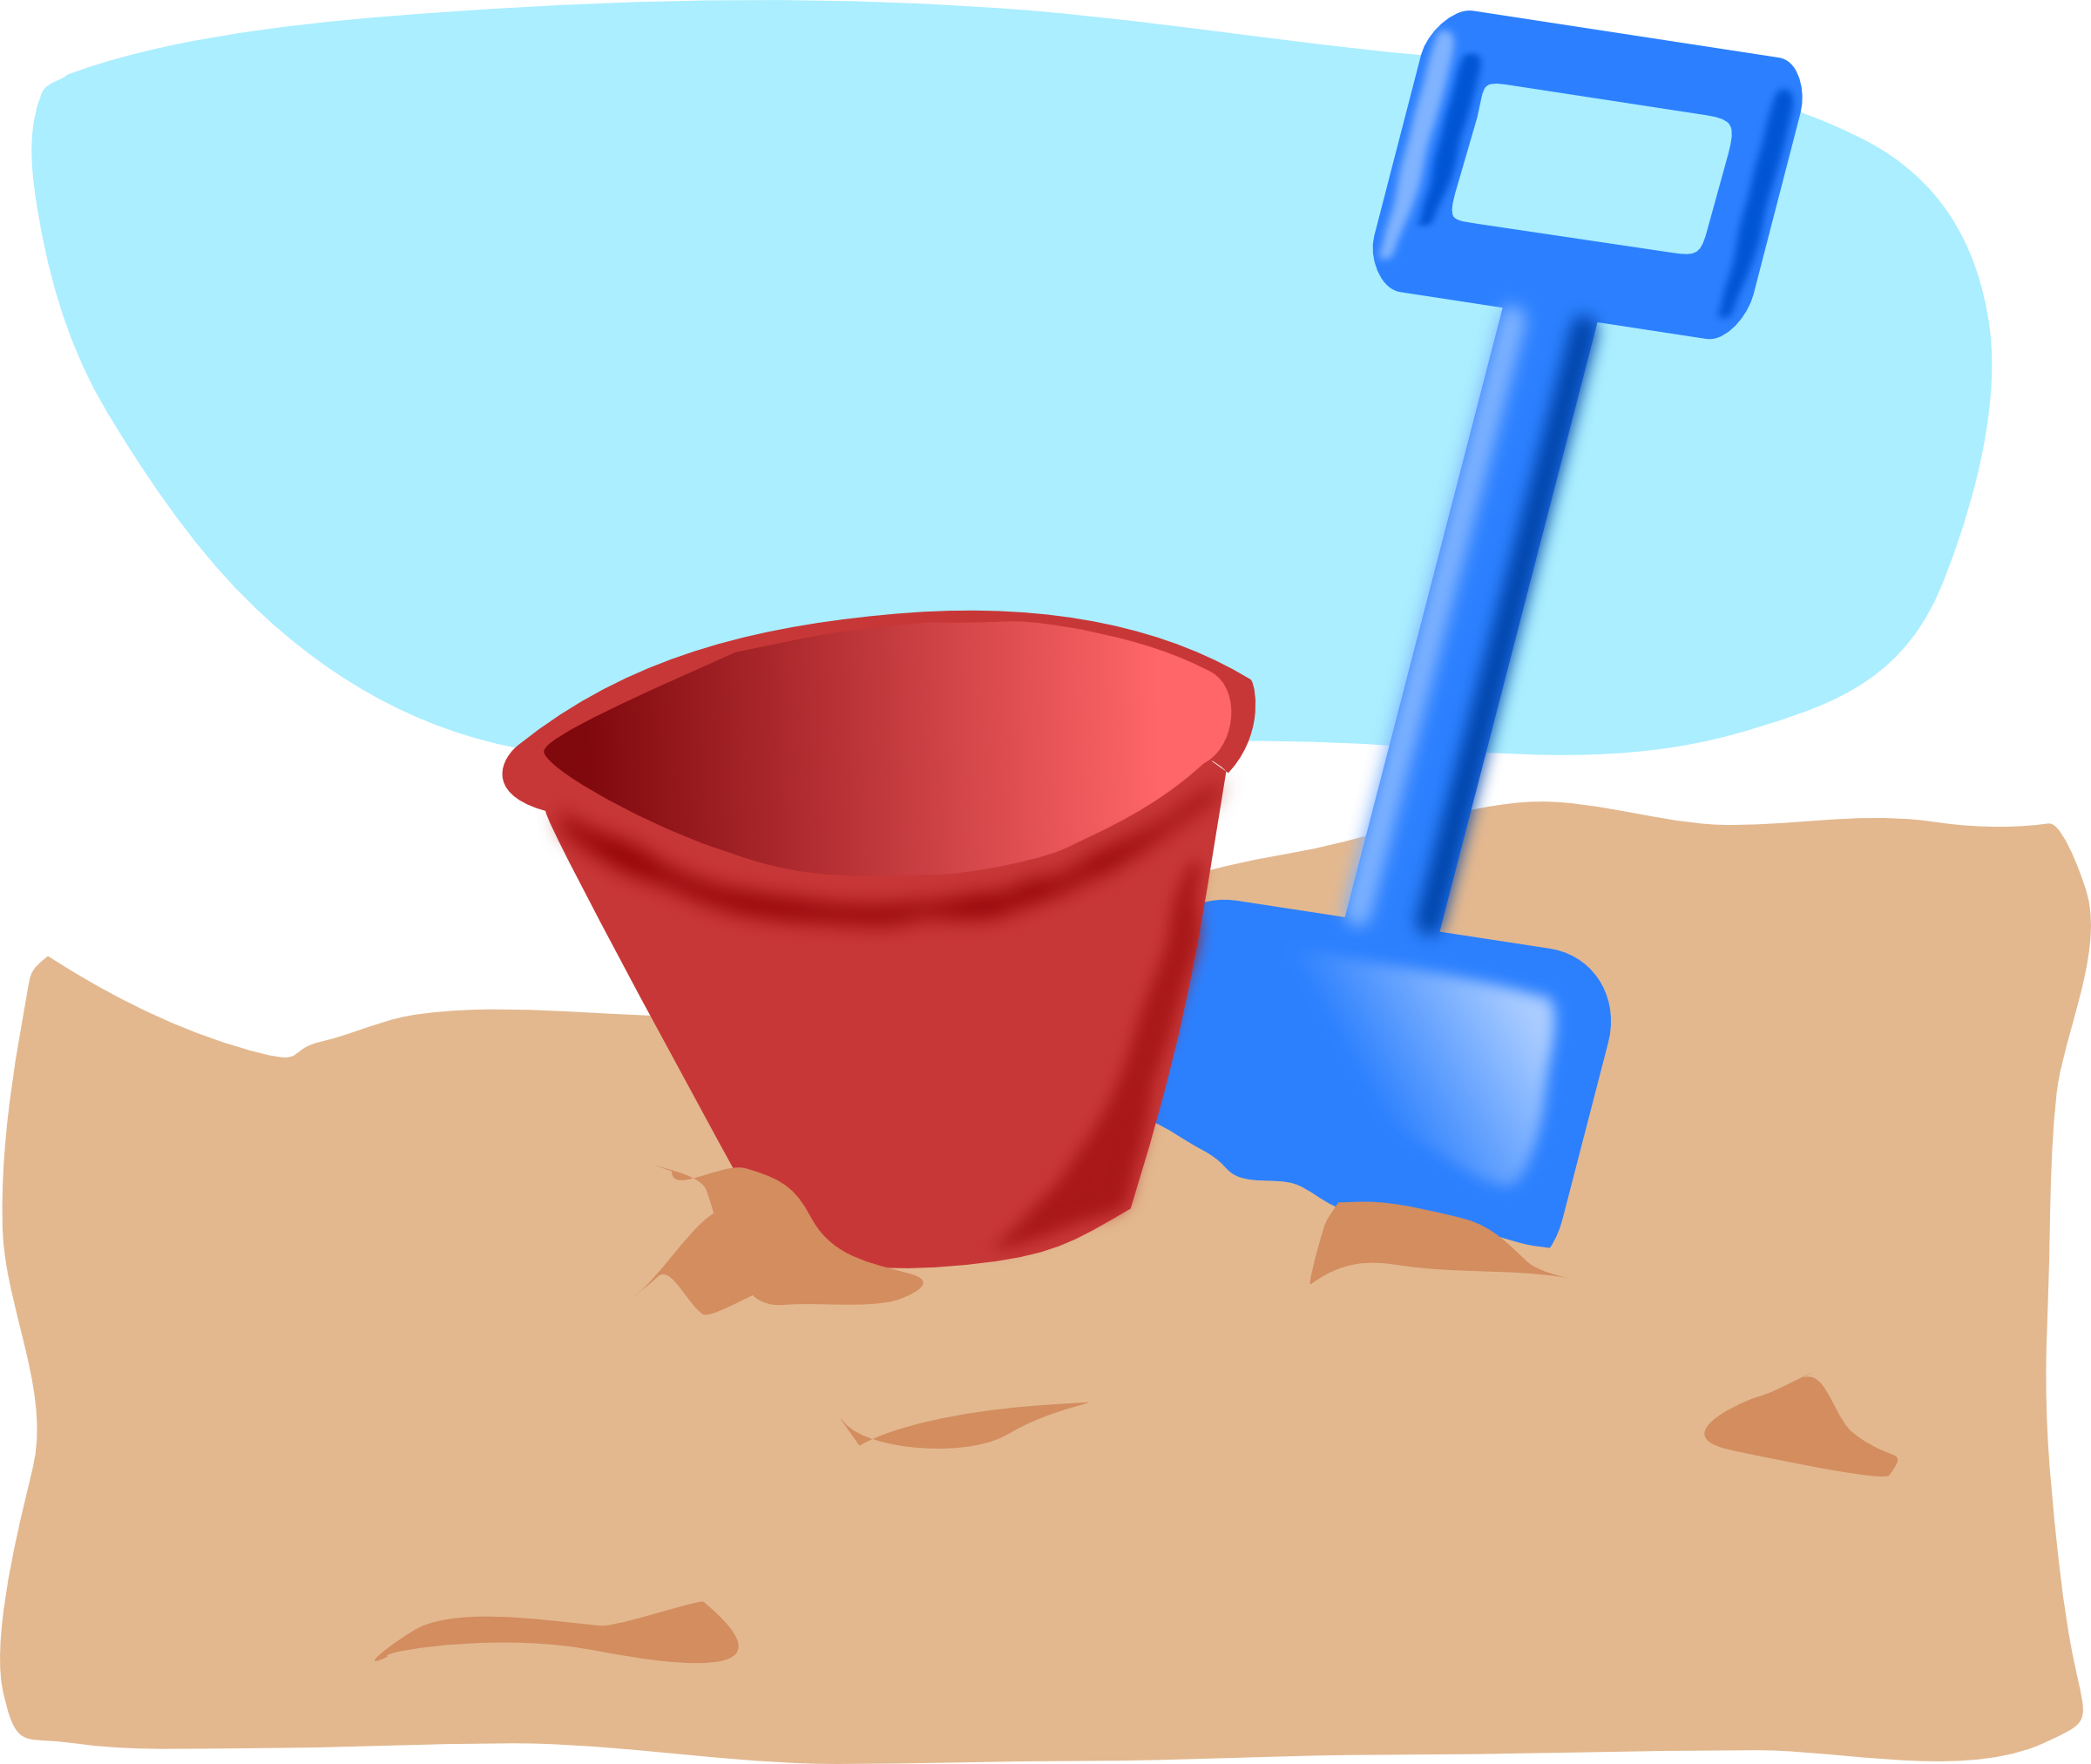 Raffle clipart bucket. Sand black and white